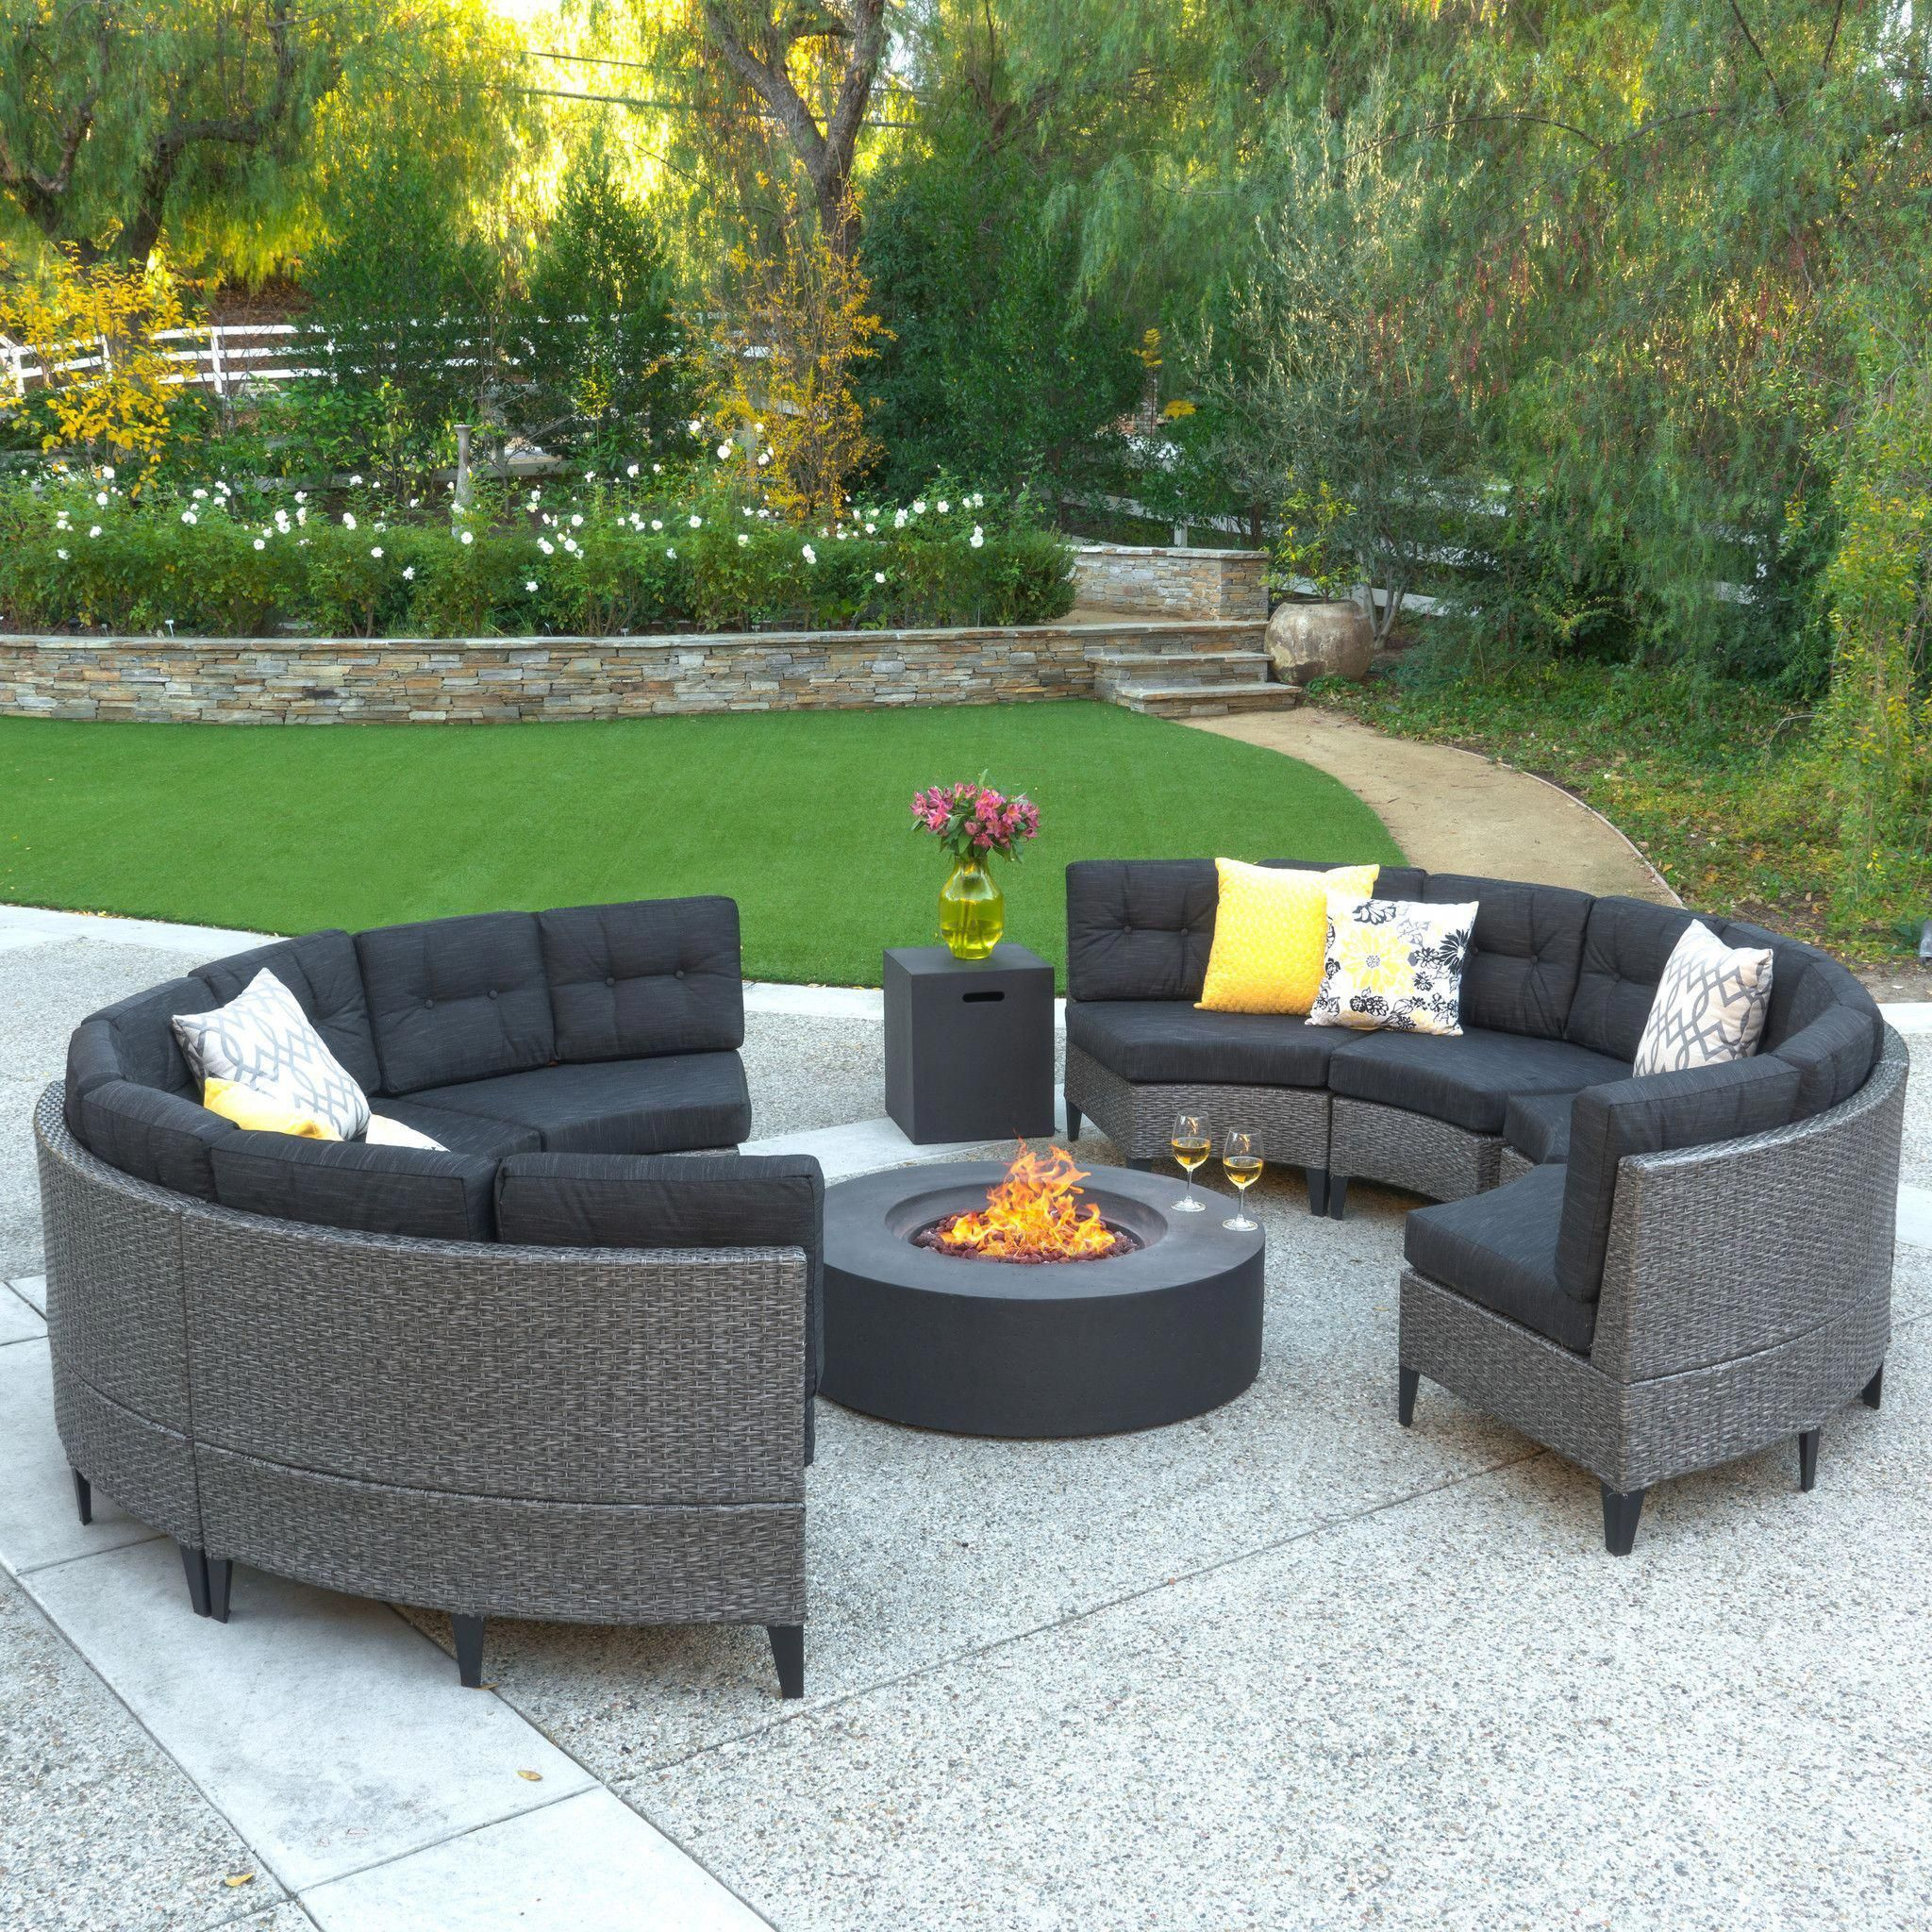 Nessett 10pc Outdoor Fire Pit Sectional Sofa Set Round Sofa Fire Pit Furniture Fire Table